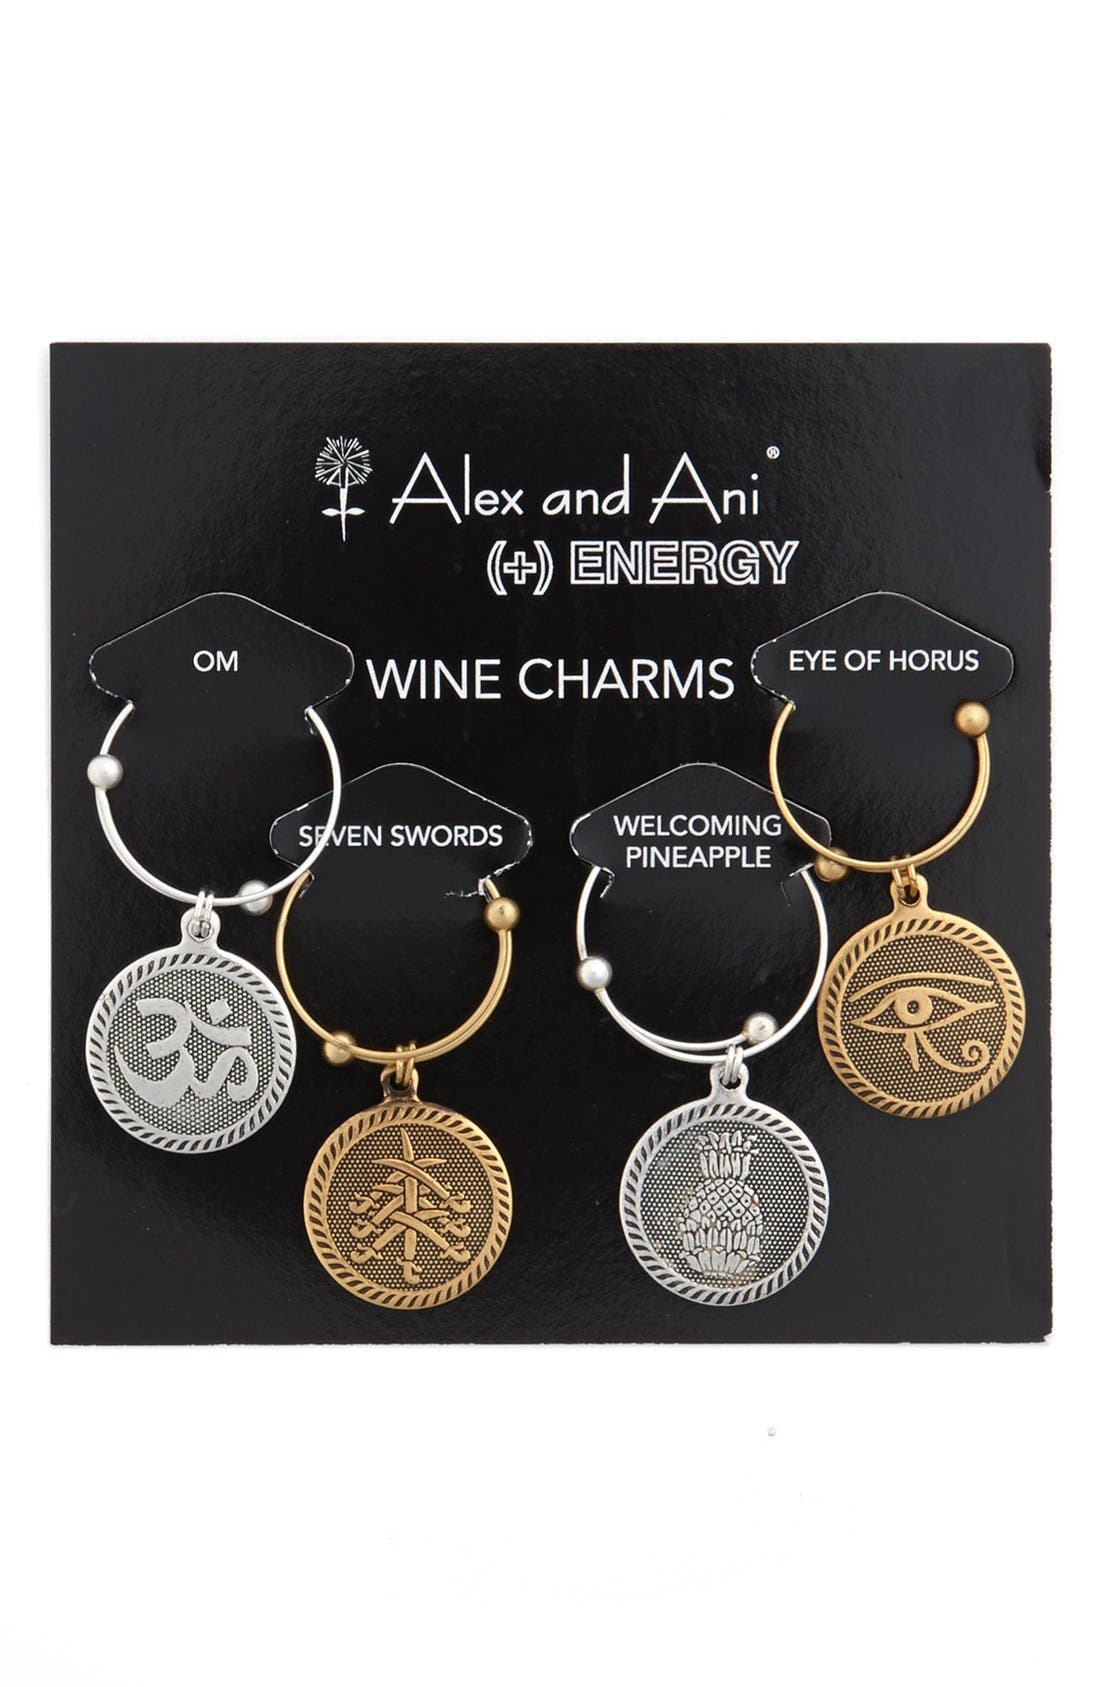 Alternate Image 1 Selected - Alex and Ani 'Spirit' Wine Charms (Set of 4)